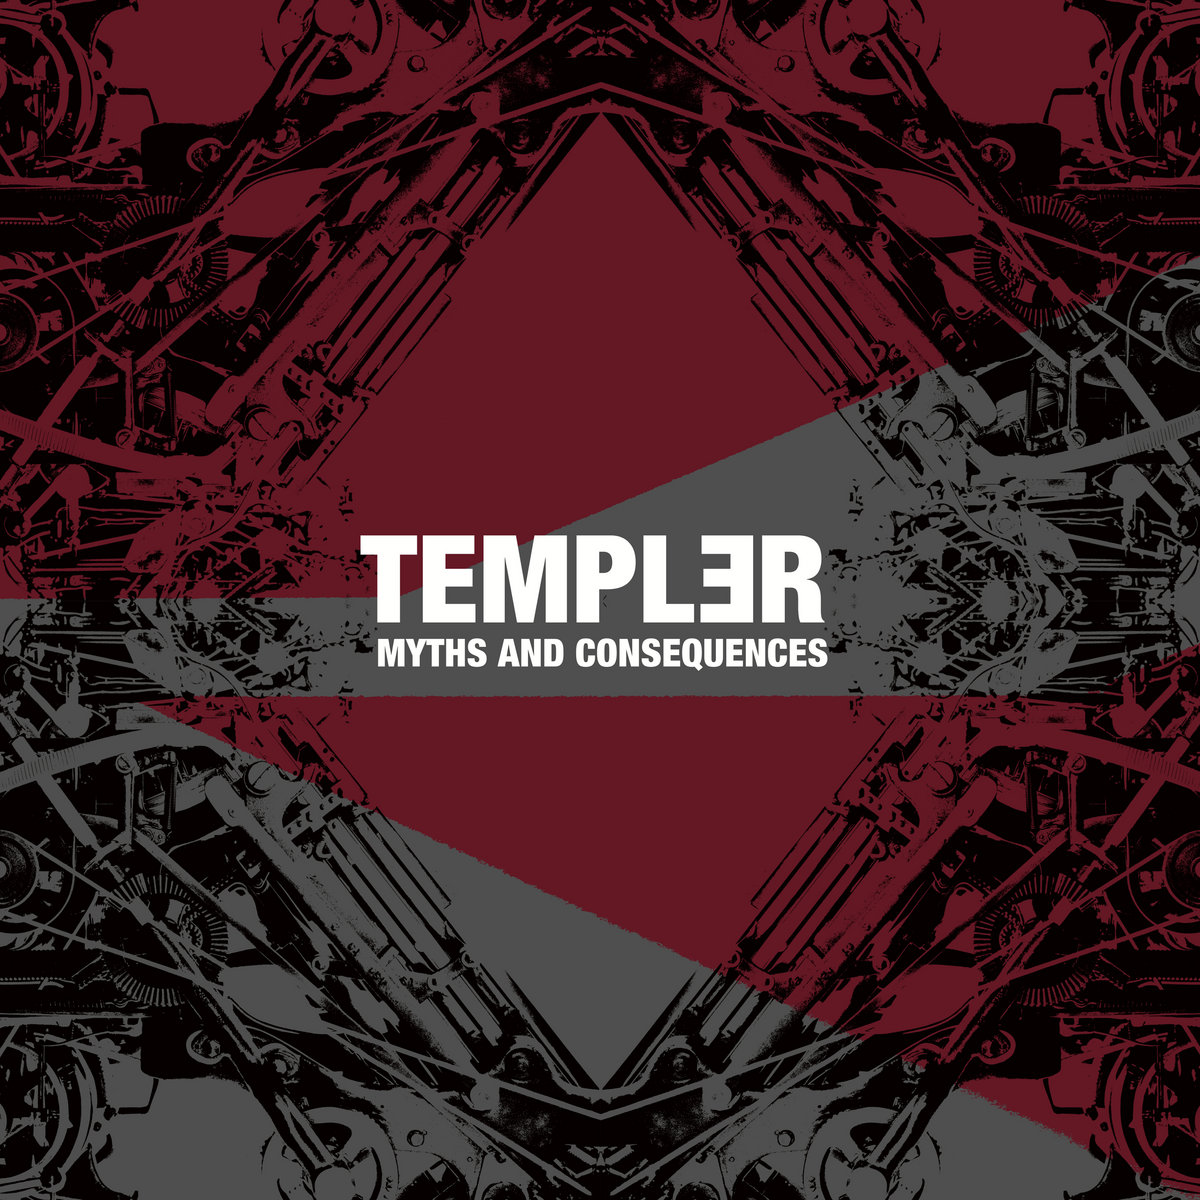 Templer - Myths and Consequences (2021) [FLAC] Download